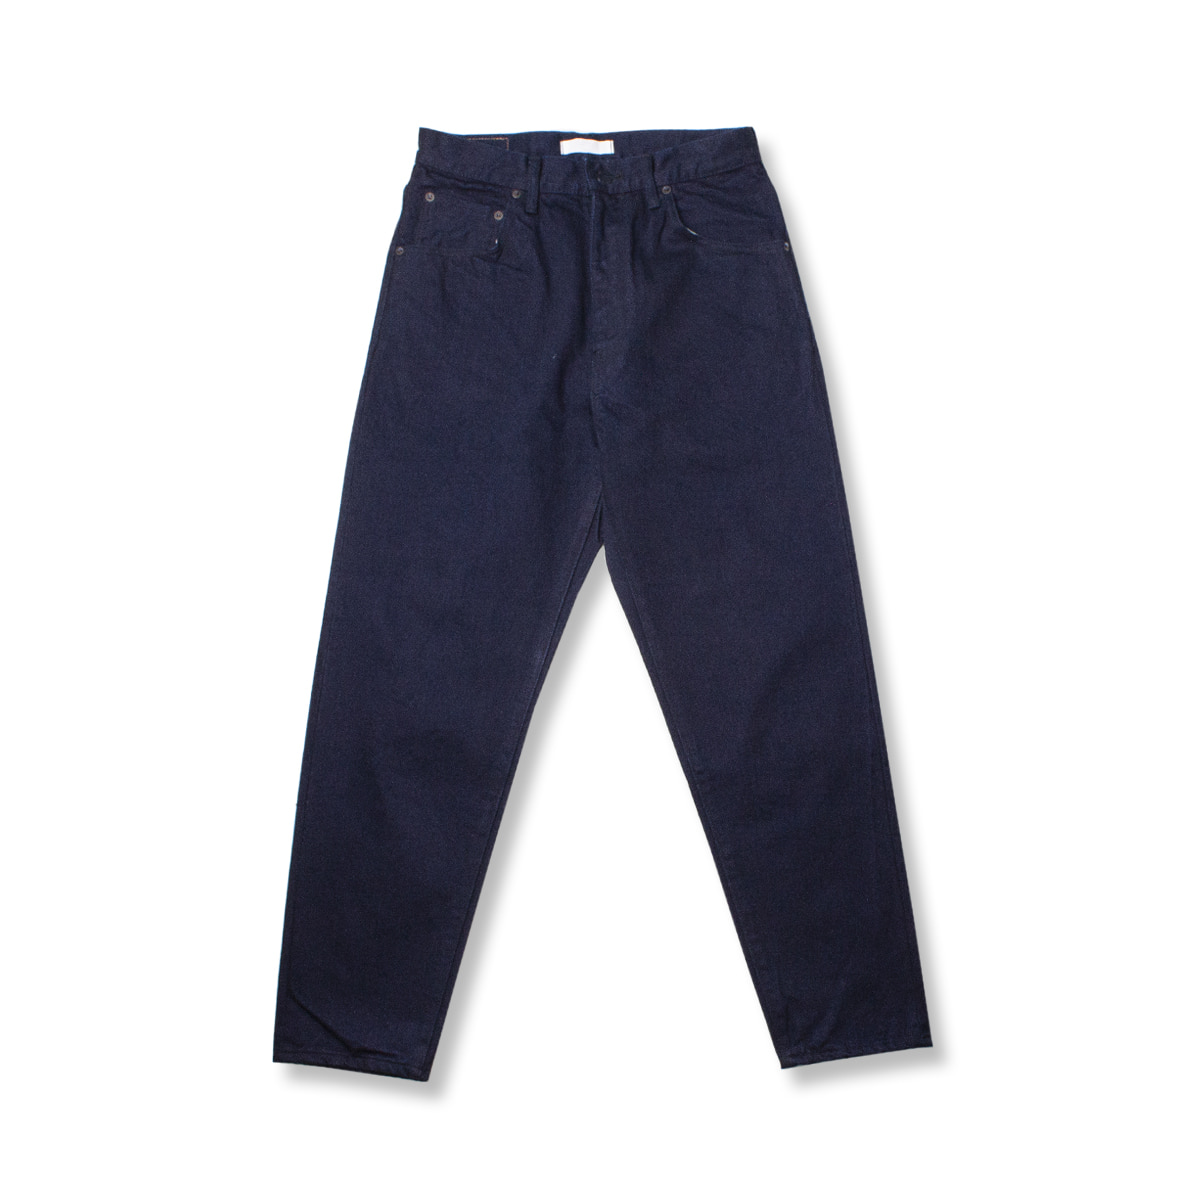 [HATSKI] REGULAR TAPERED DENIM 'INDIGO BLACK'